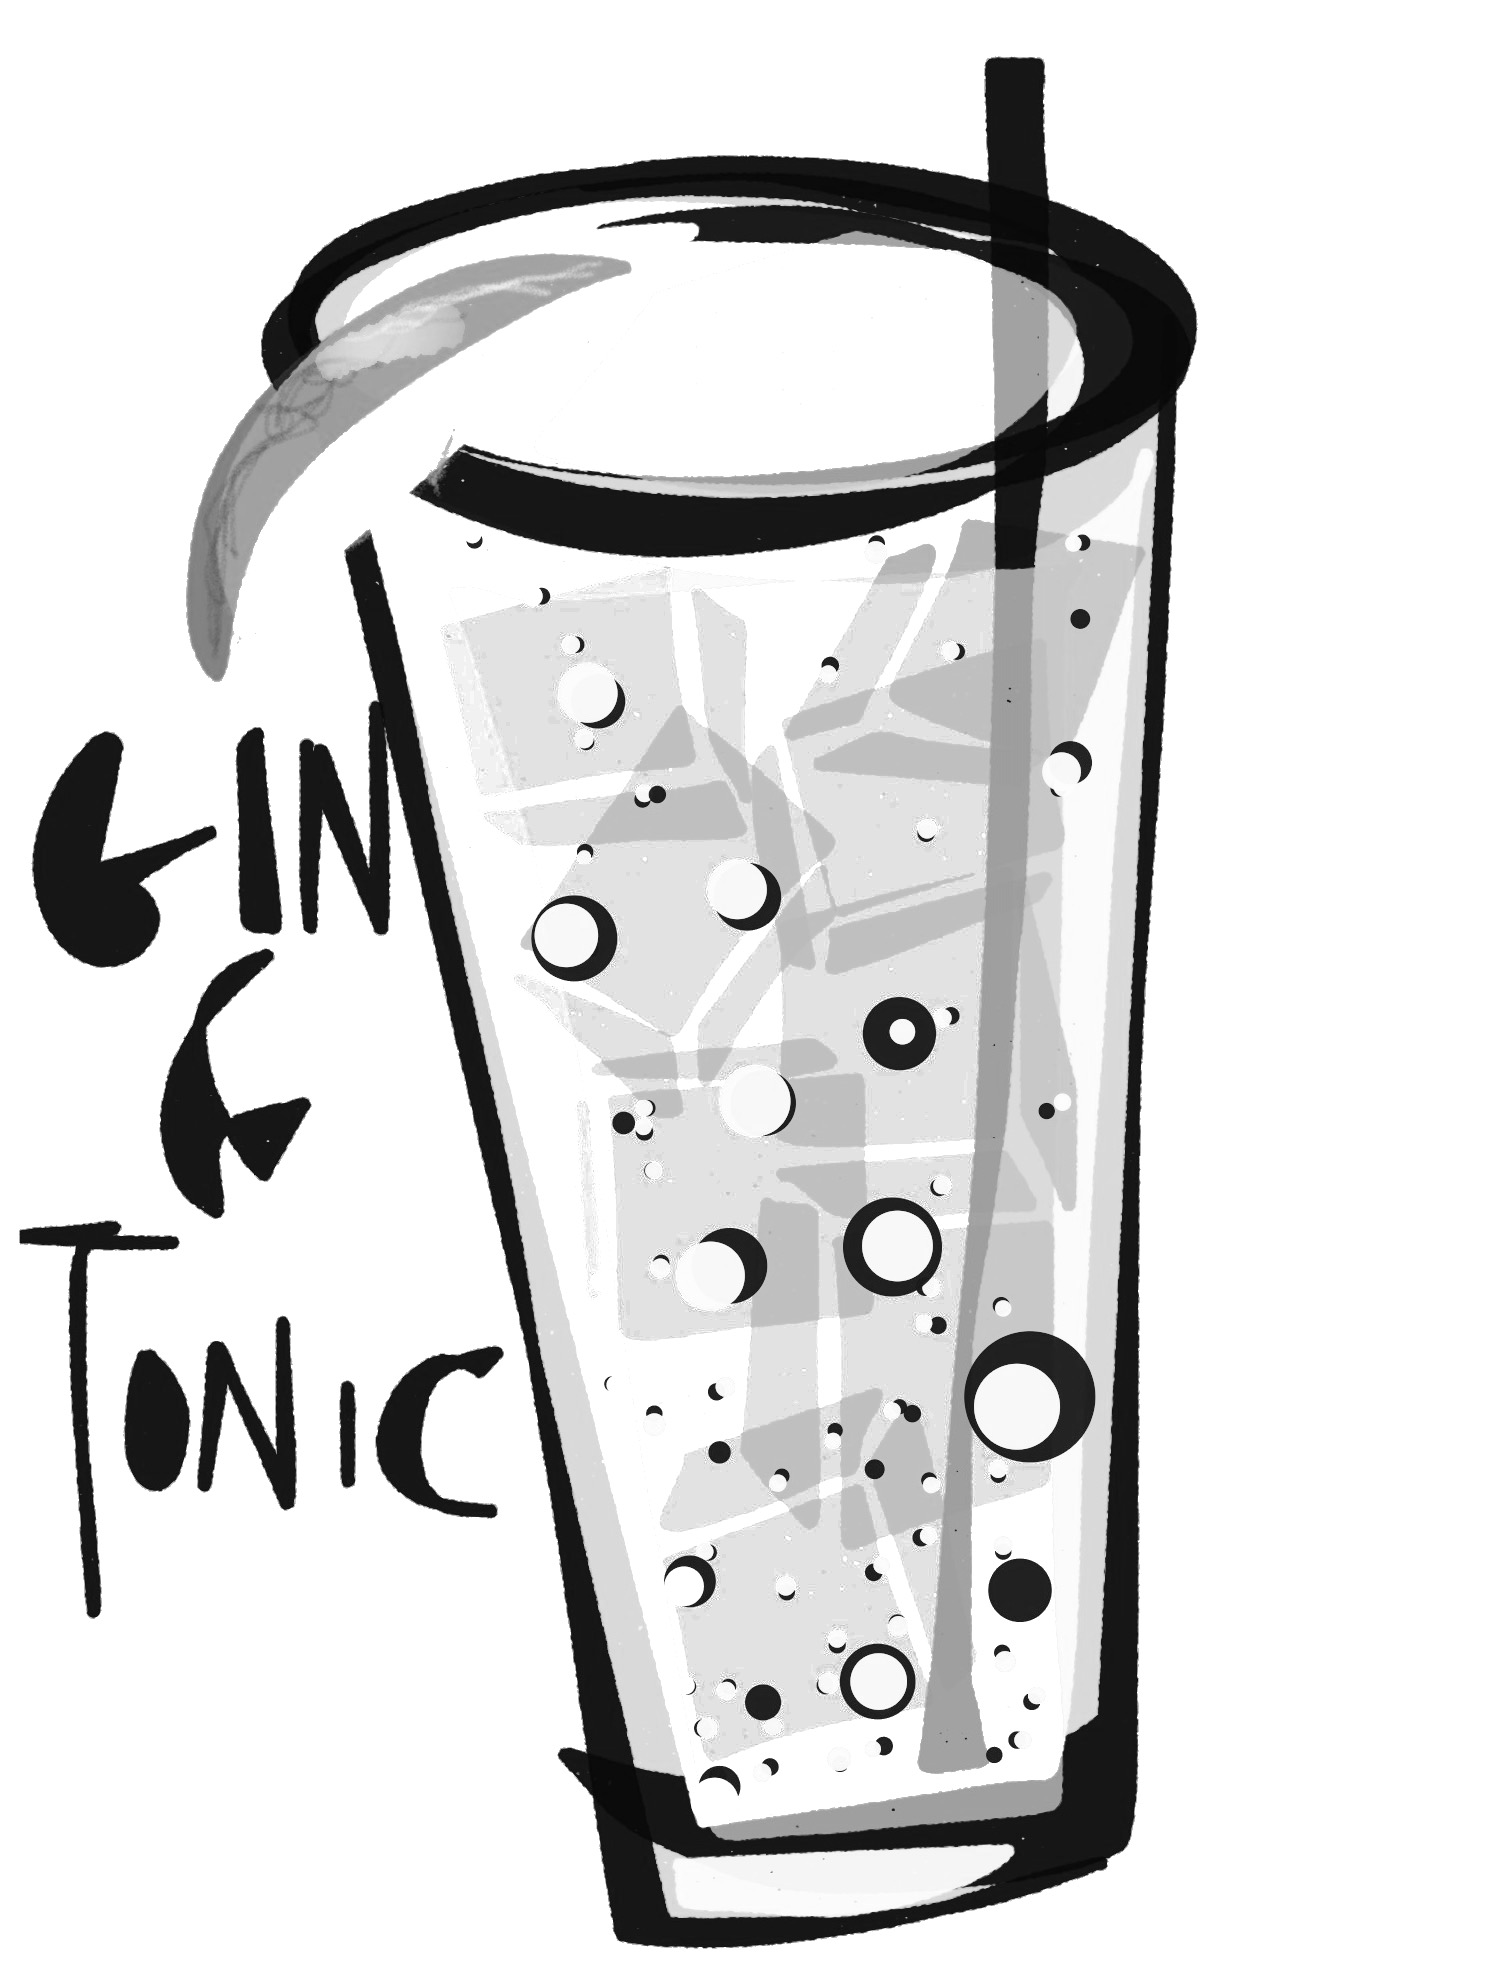 gin-and-tonic-by-andrew-bohrer